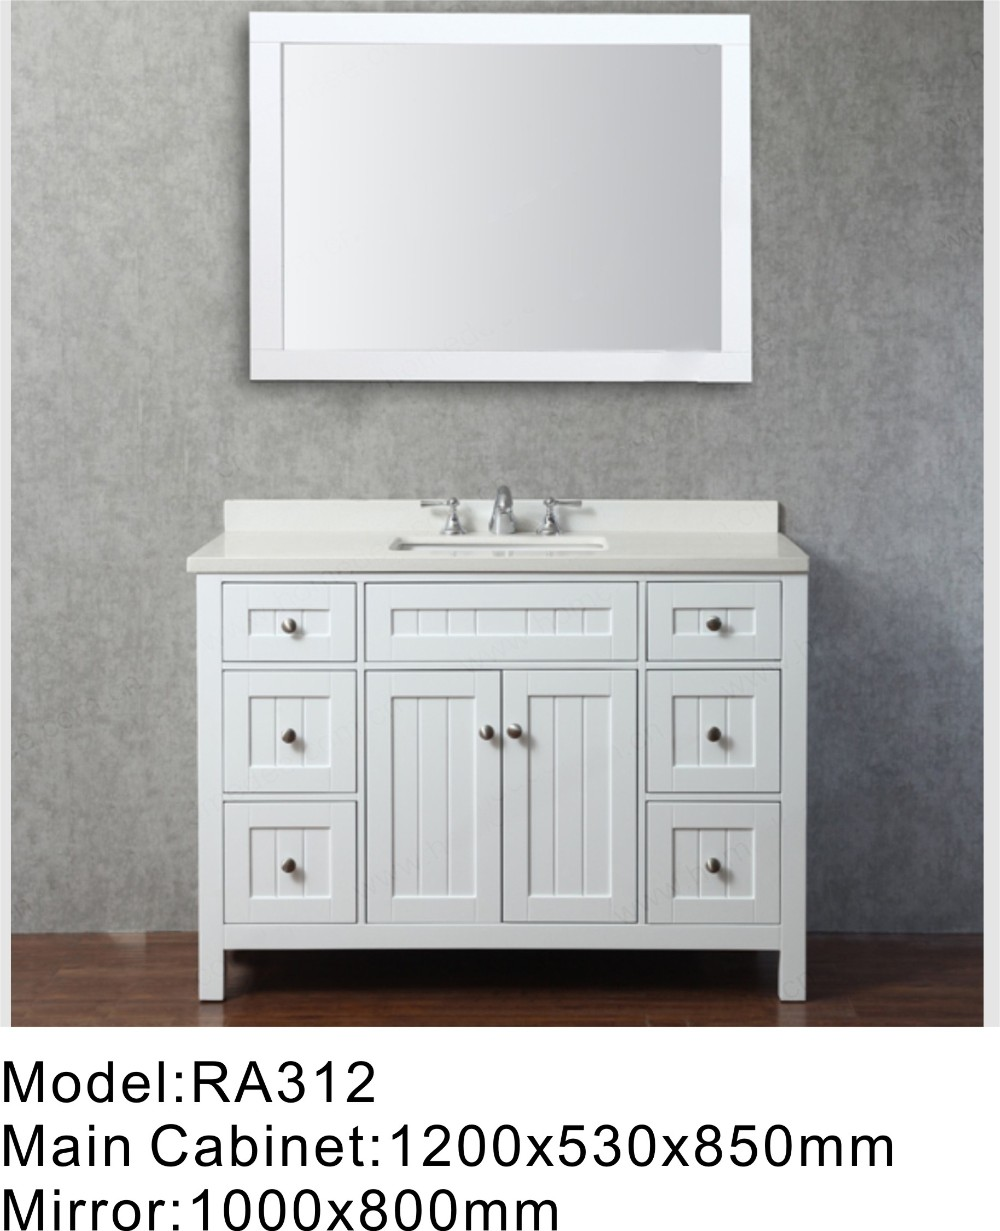 Ra312 Tall Mirror American Bathroom Cabinet,Rotating Bathroom Mirror ...